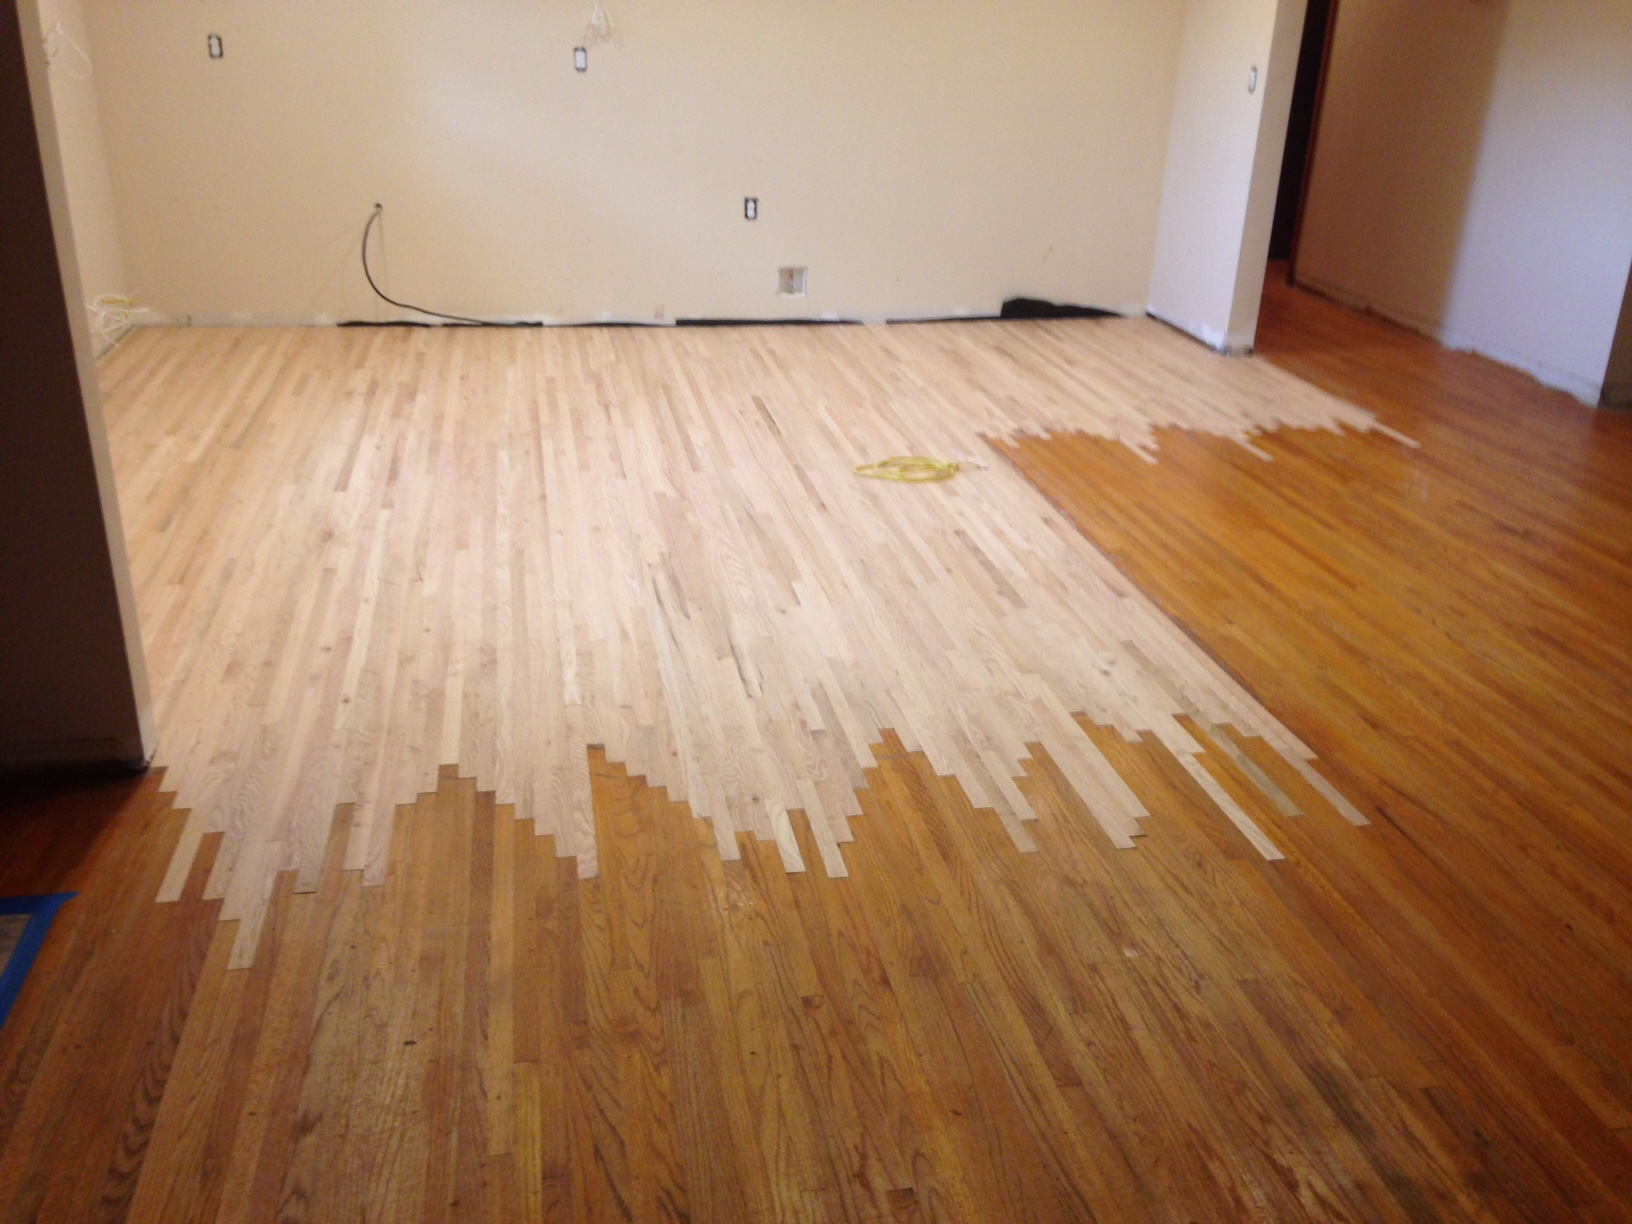 Wood Floor Repair And Refinishing In Jacksonville Dan S